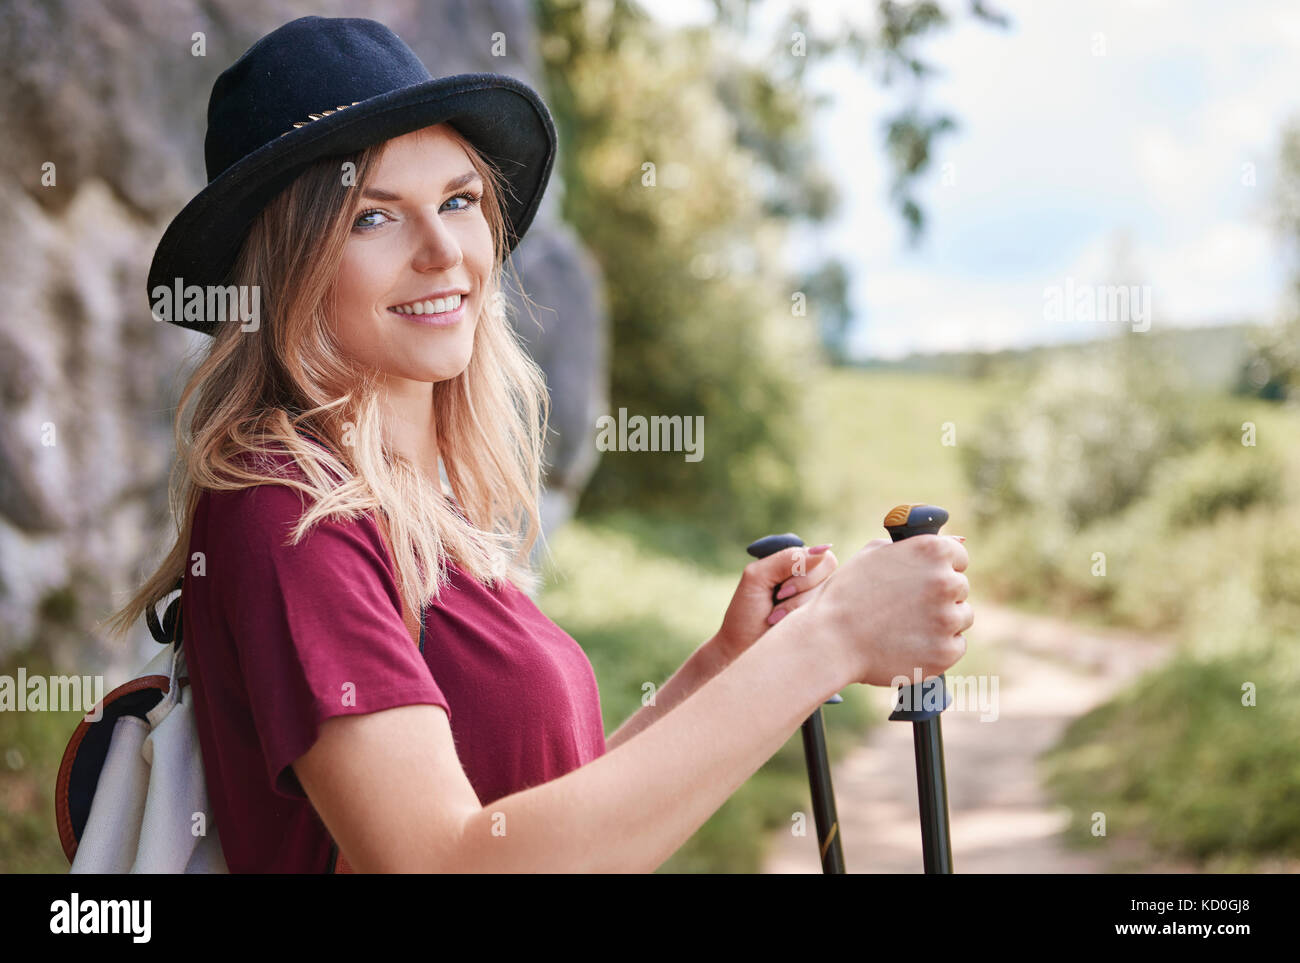 Portrait of woman with walking poles looking at camera smiling, Krakow, Malopolskie, Poland, Europe - Stock Image